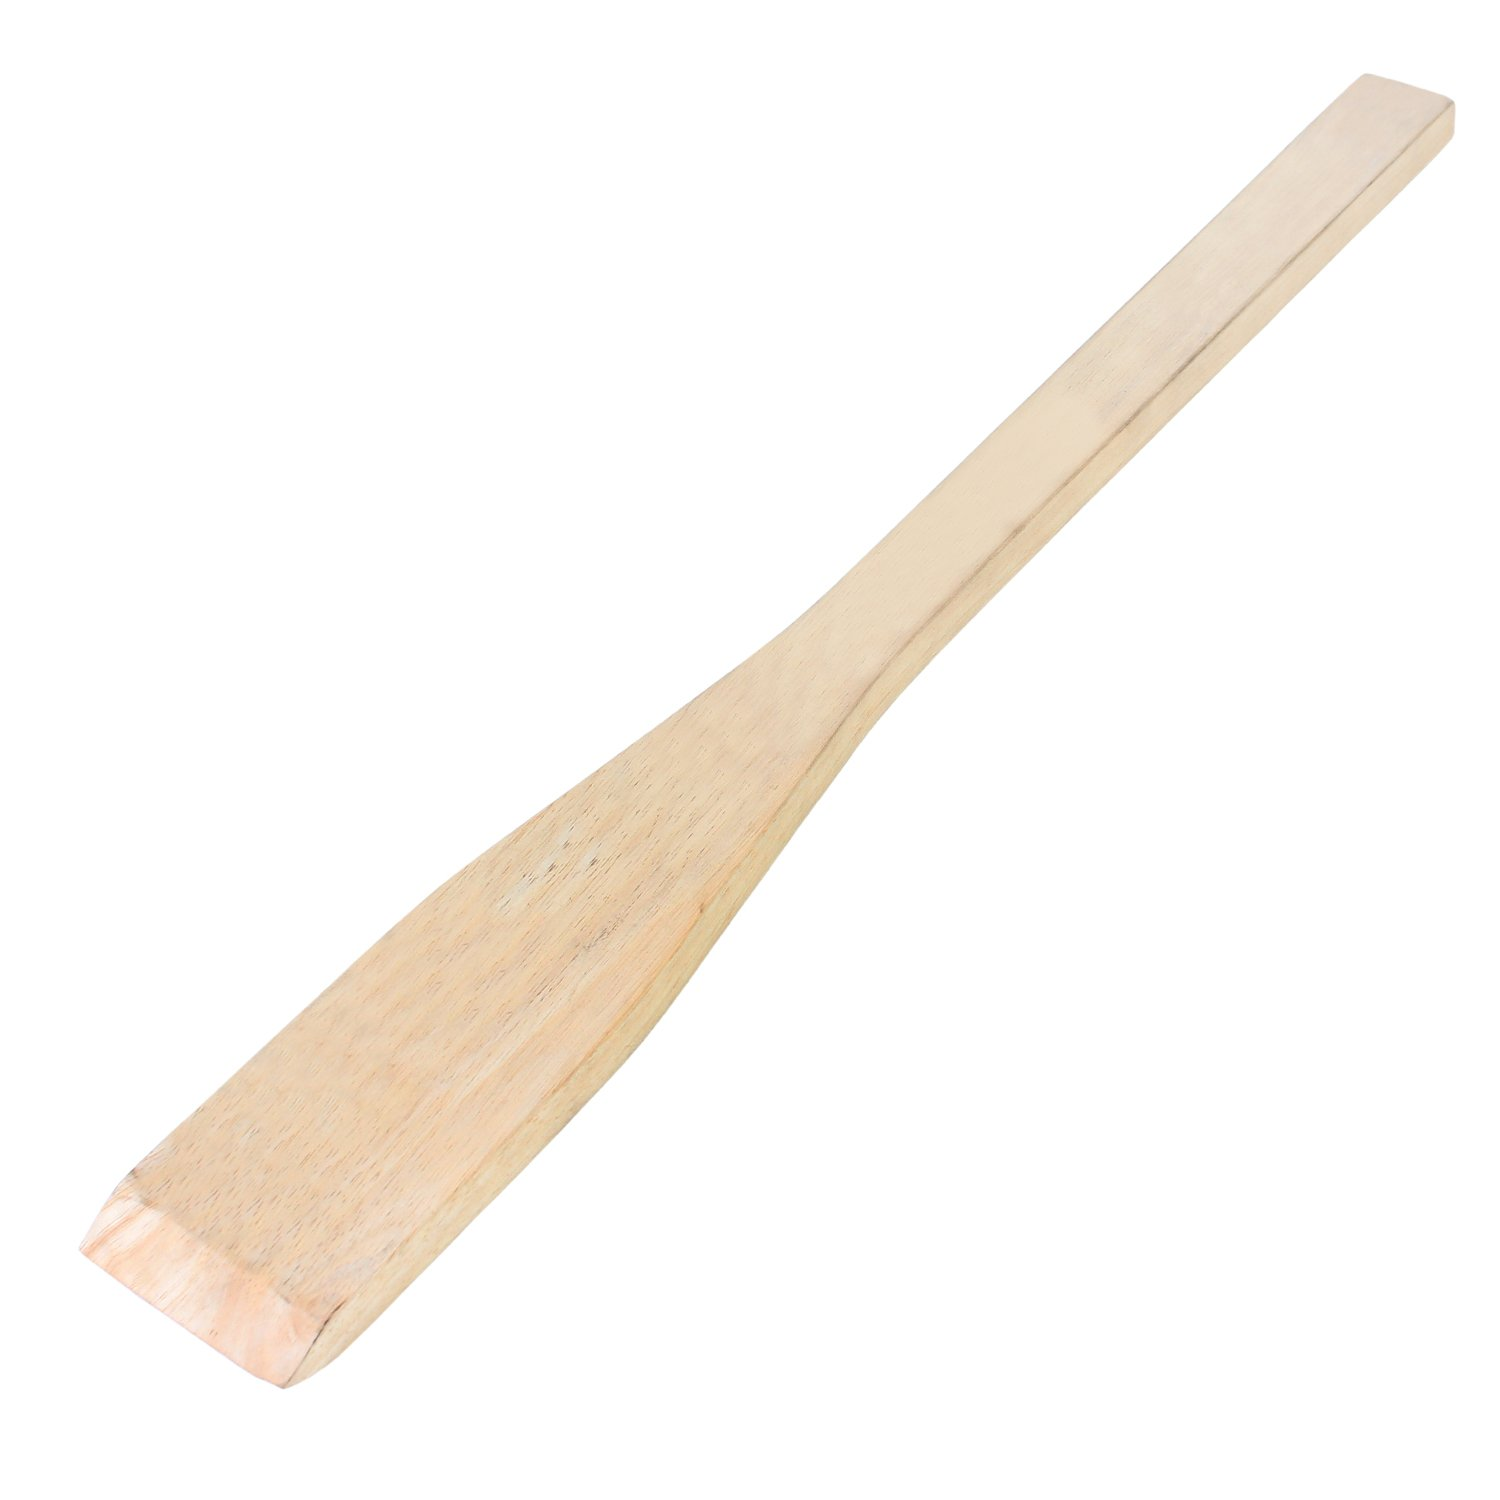 Excellante 849851009172 Wood Mixing Paddles, 24''